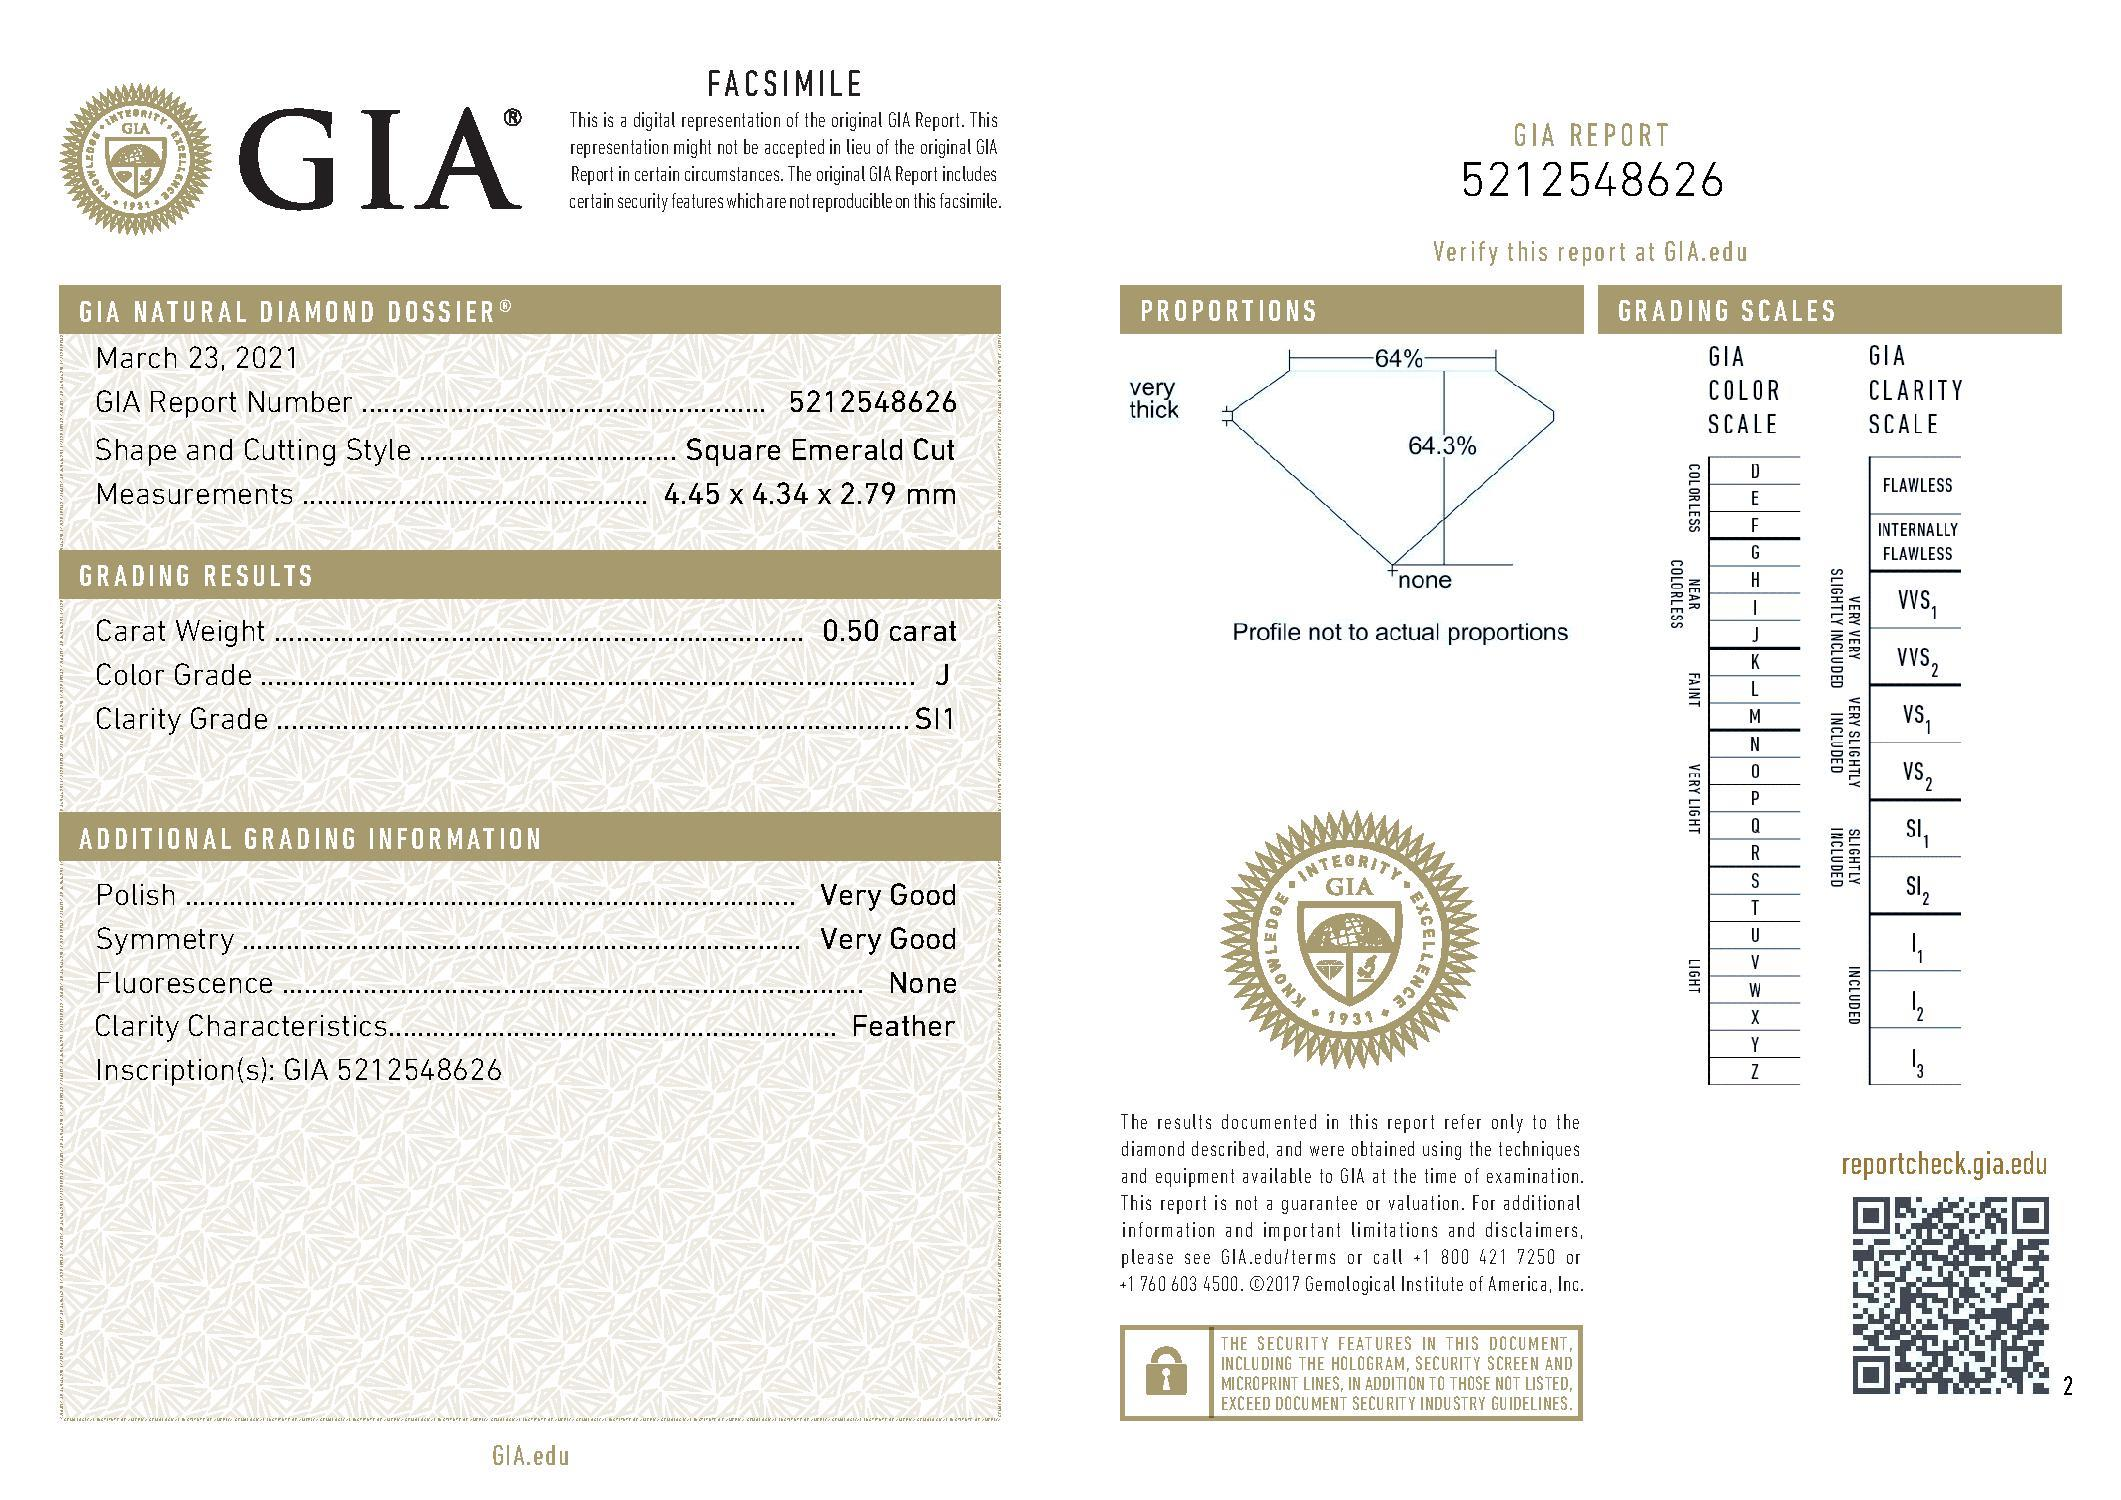 This is a 0.50 carat asscher shape, J color, SI1 clarity natural diamond accompanied by a GIA grading report.